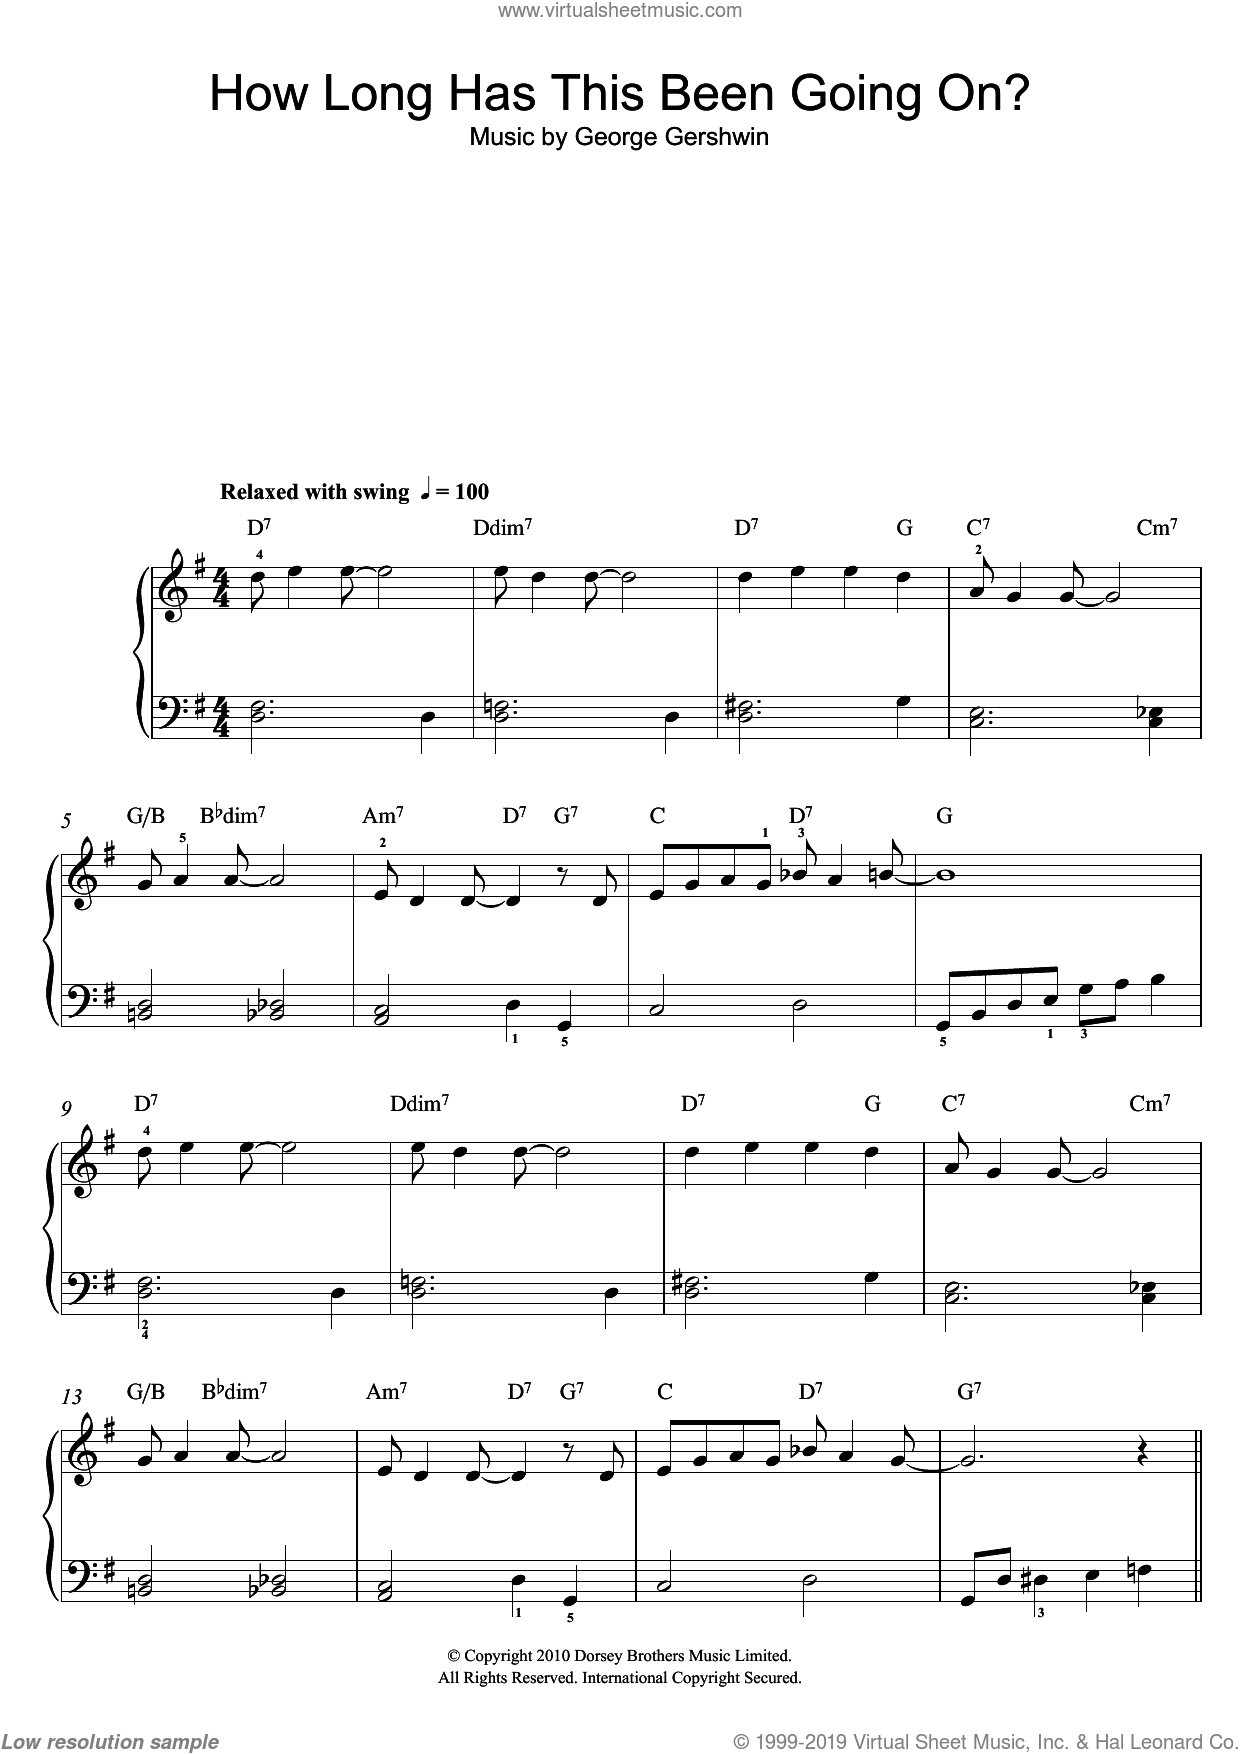 How Long Has This Been Going On? sheet music for piano solo by George Gershwin, easy skill level